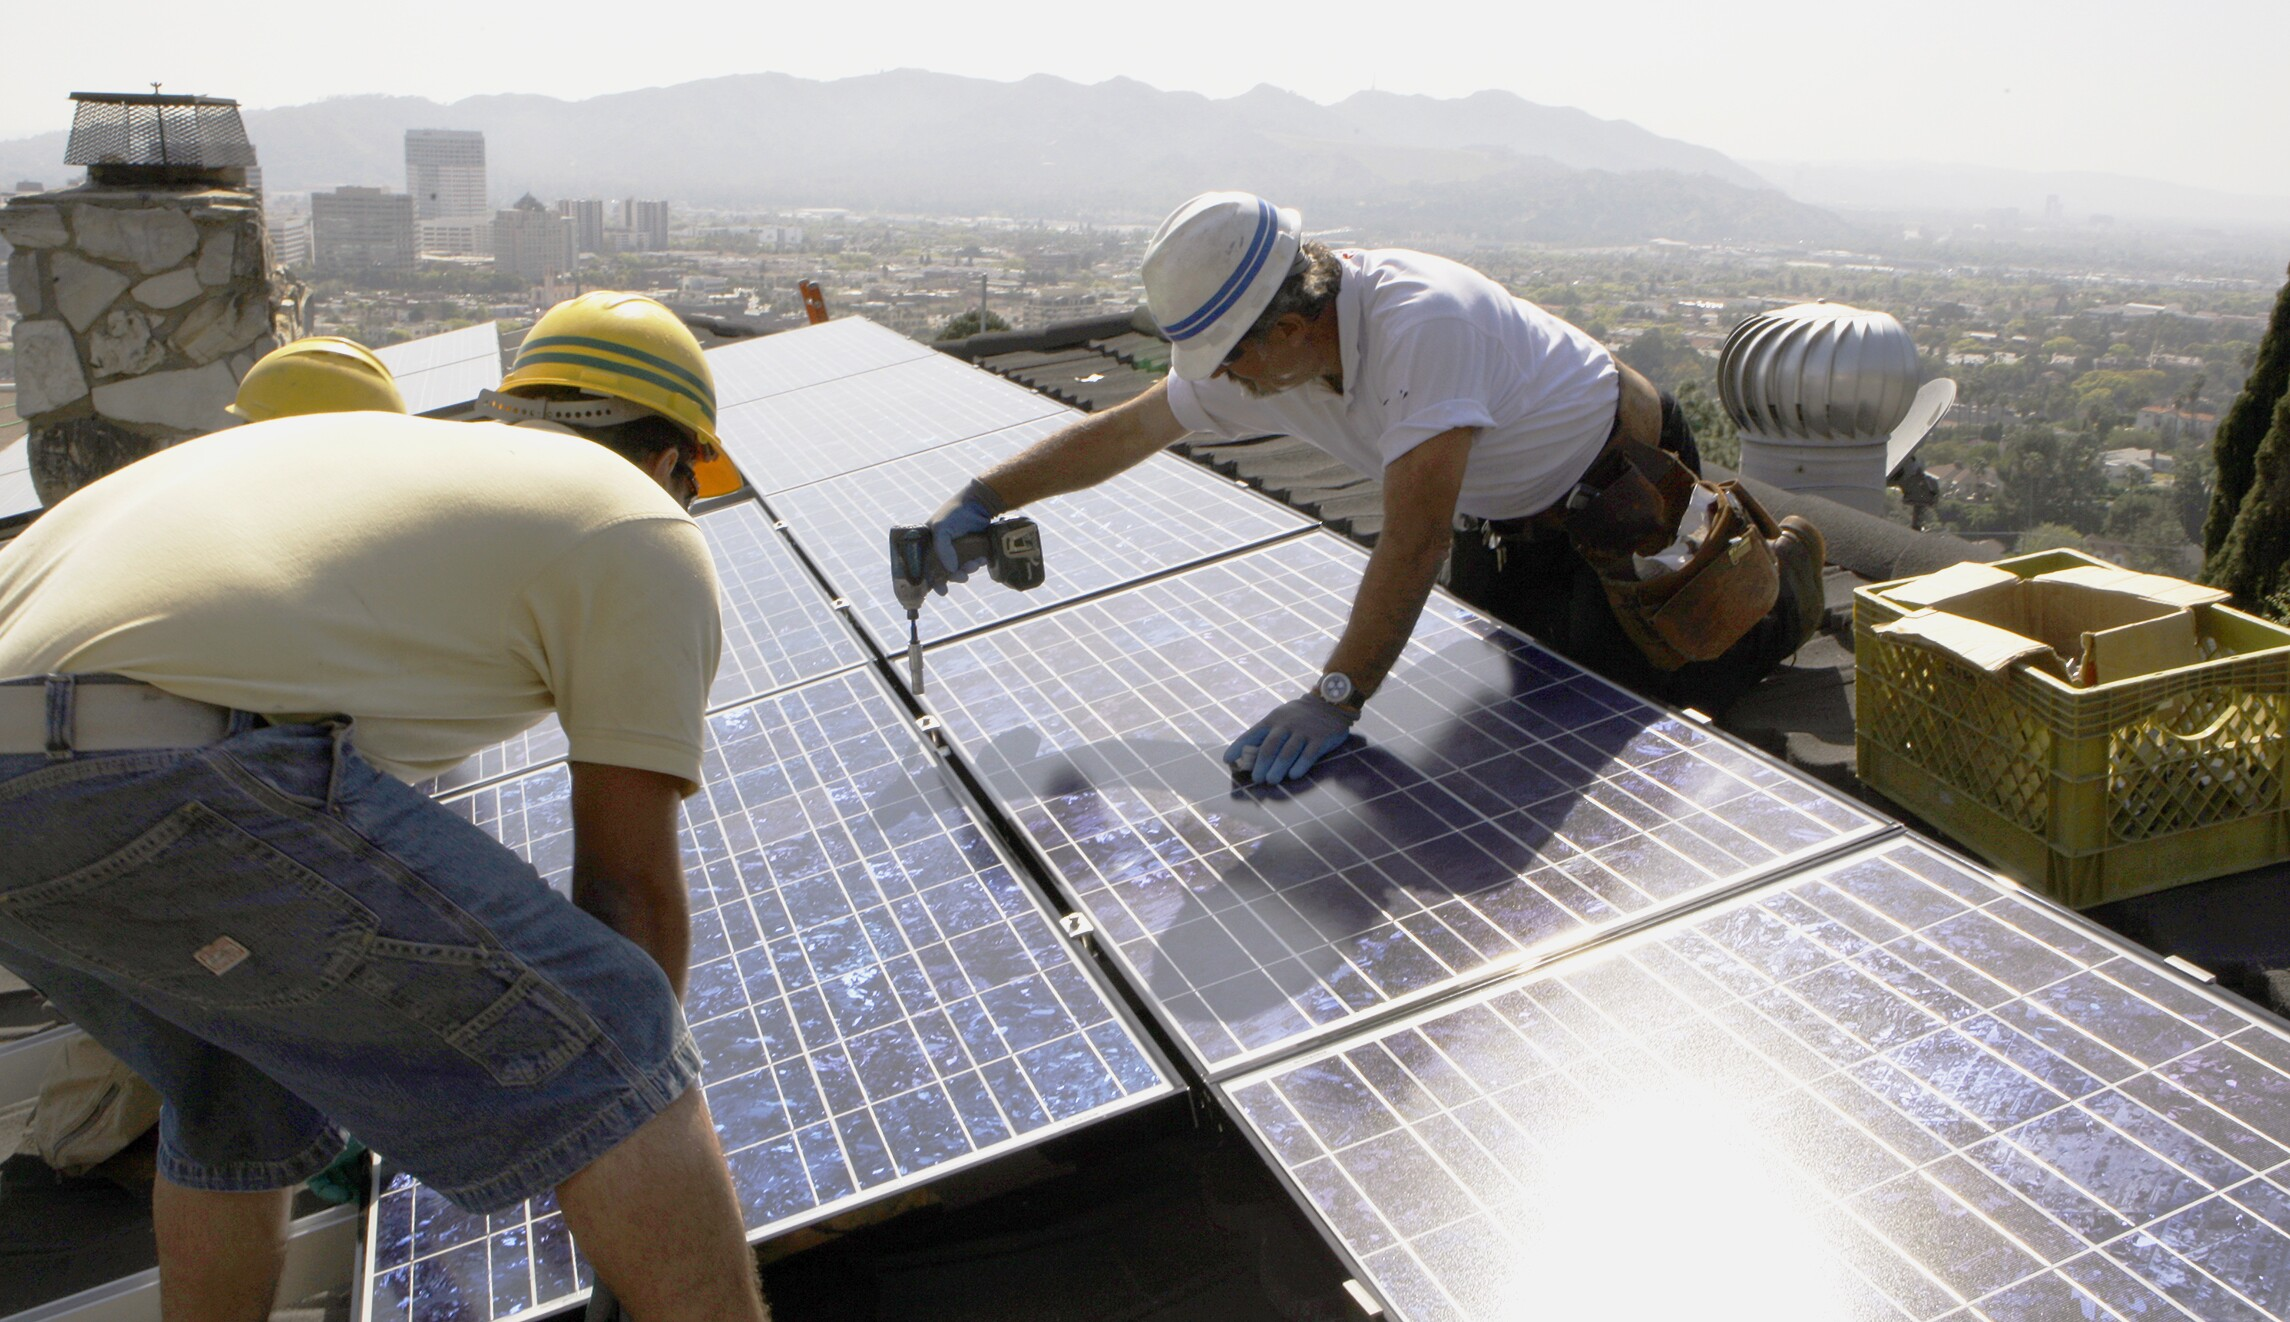 California becomes first state requiring solar panels on new homes